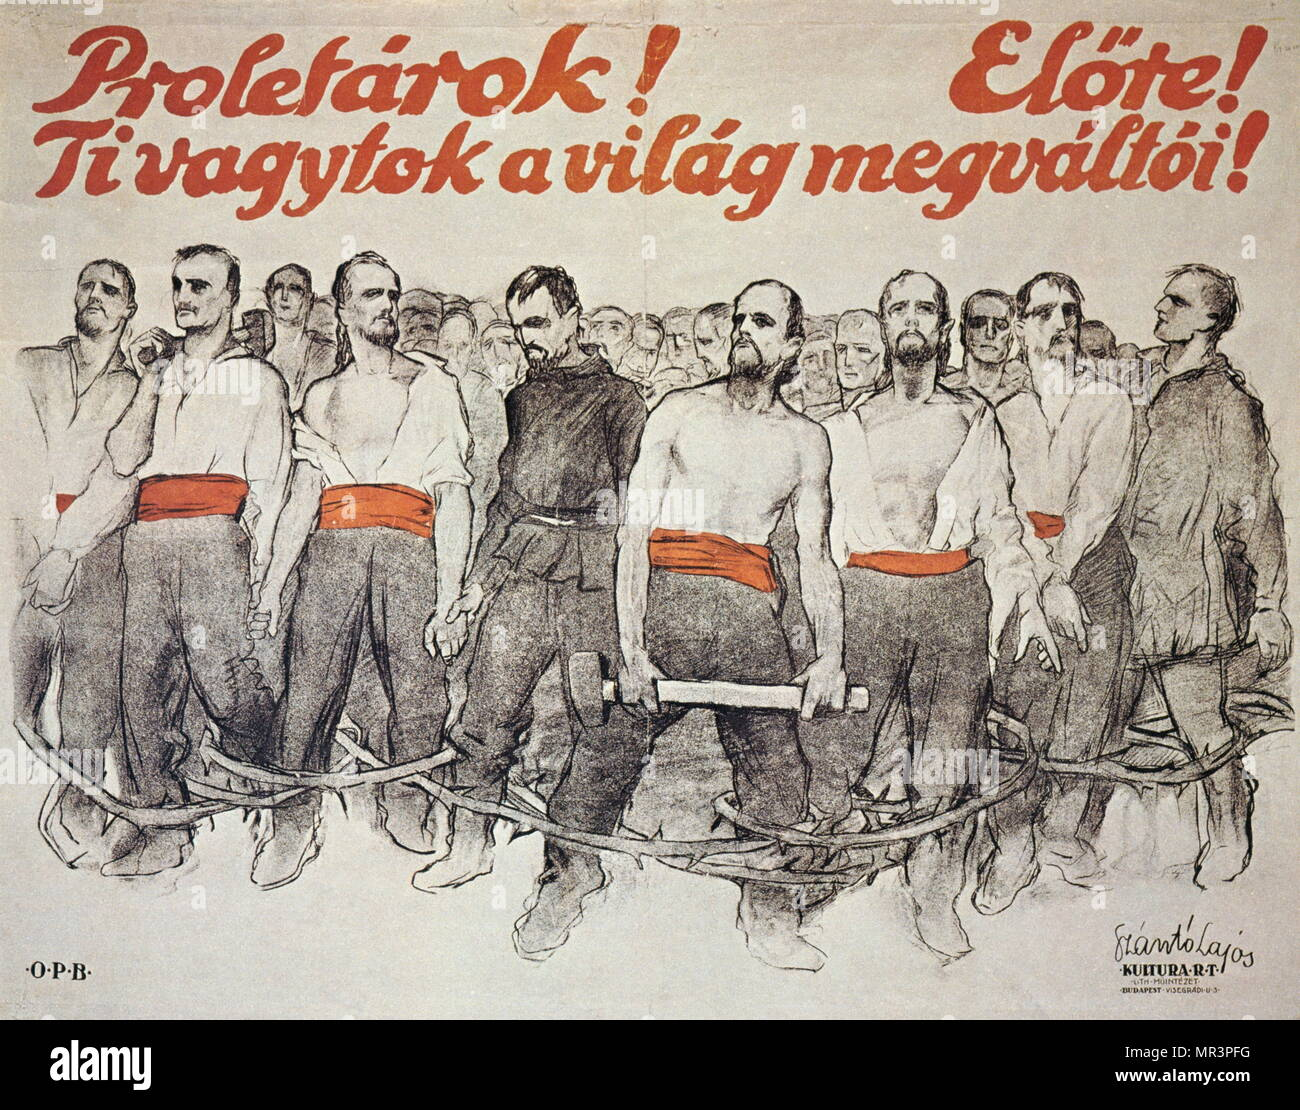 Hungarian Revolutionary poster of 1919, calling on workers to 'advance and save the world'. By Lajos Szanto (1890-1965), painter and graphic artist - Stock Image